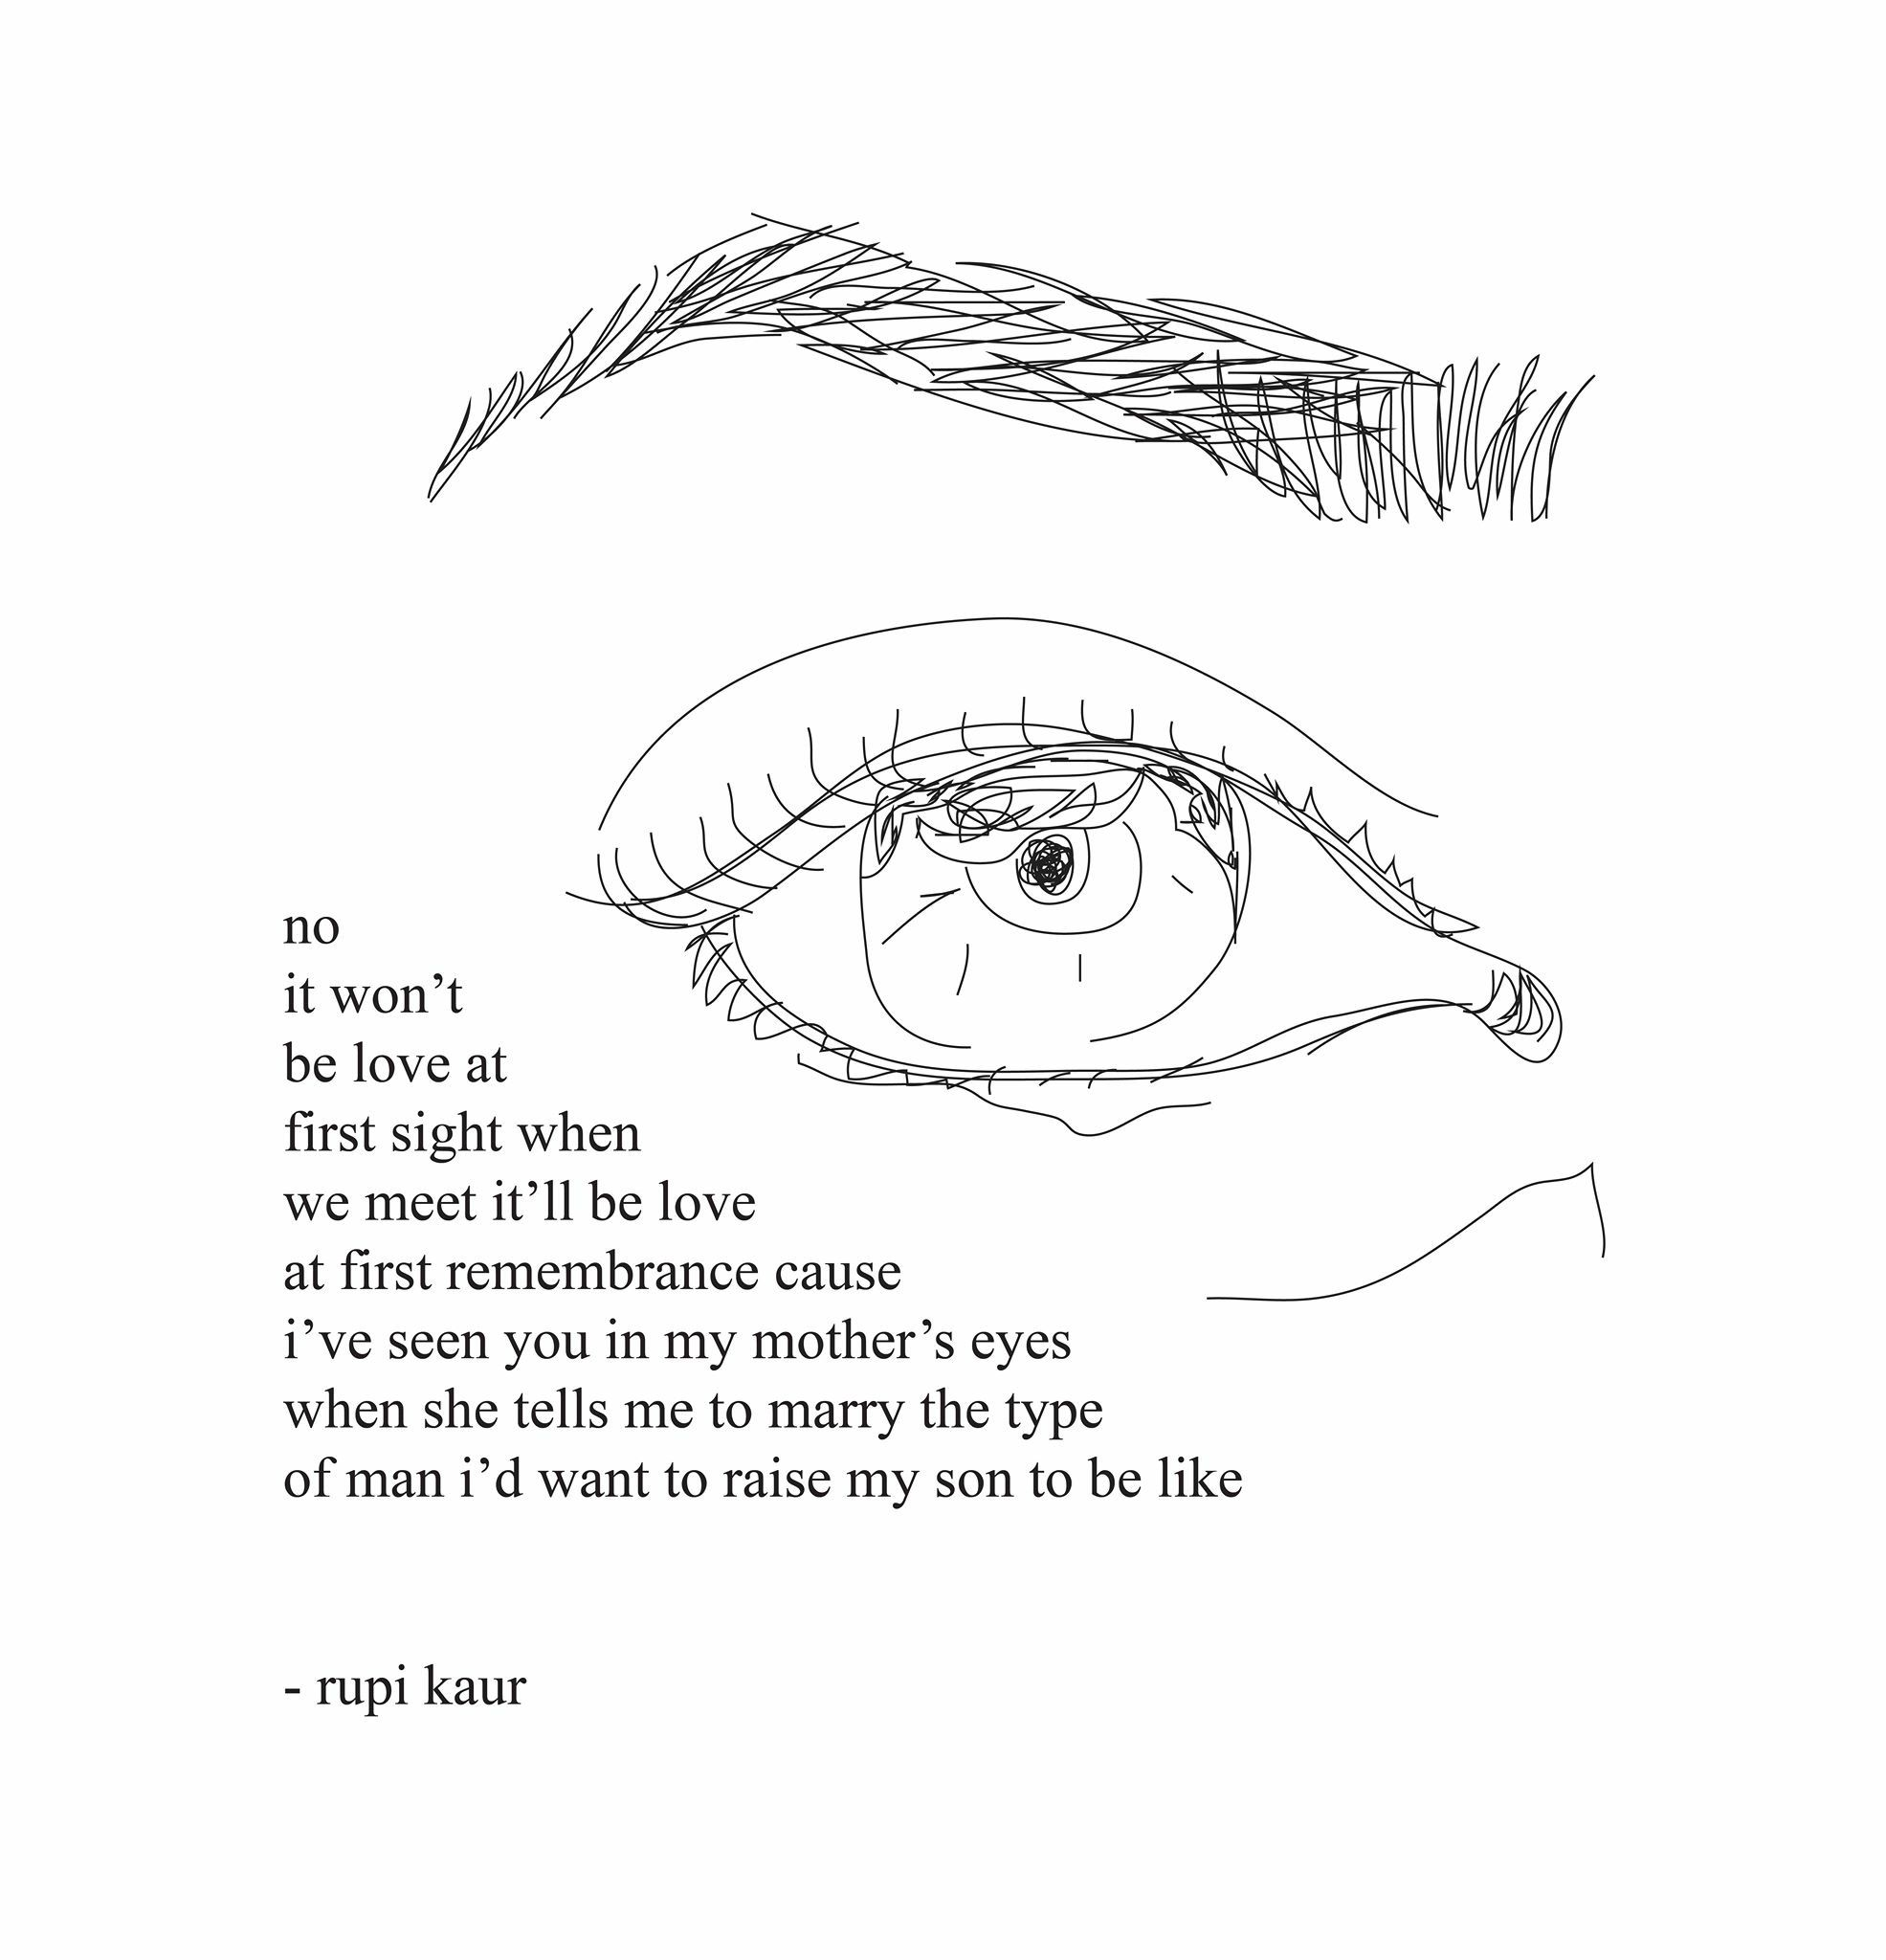 Rupi Kaur Quotes Custom Image Result For Rupi Kaur Quotes  Loveee  Pinterest  Rupi Kaur